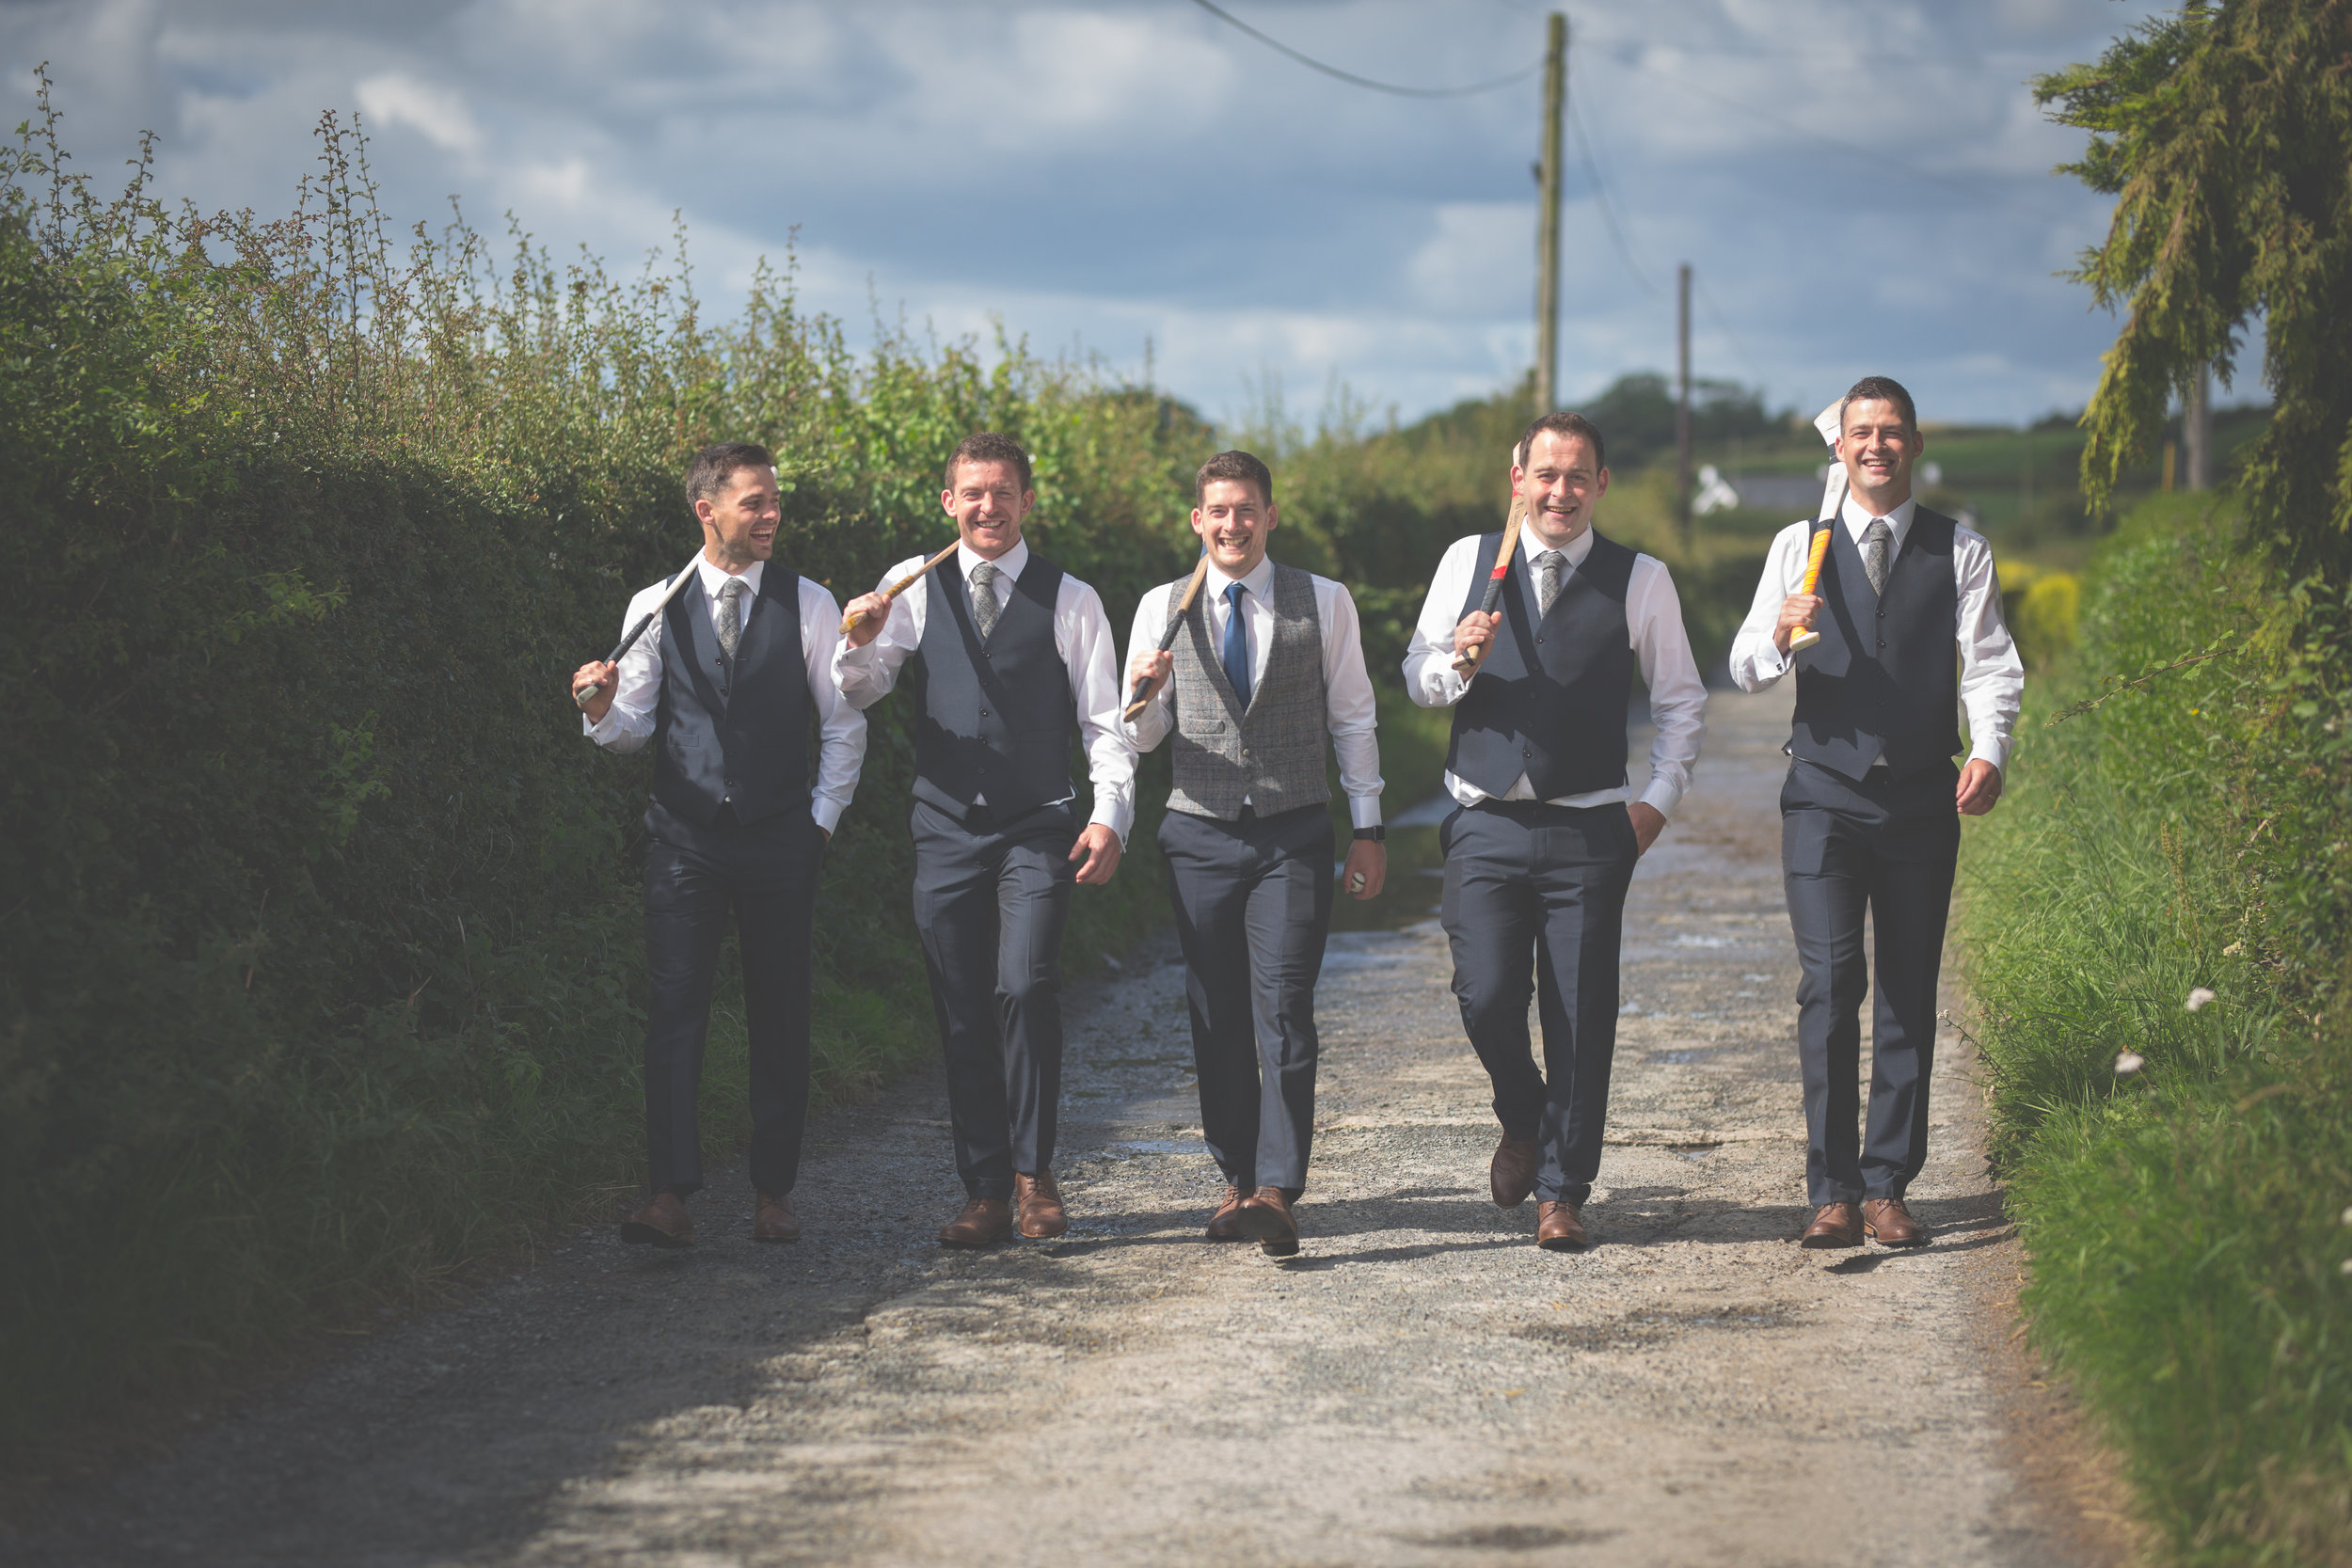 Brian McEwan Wedding Photography | Carol-Anne & Sean | Groom & Groomsmen-61.jpg